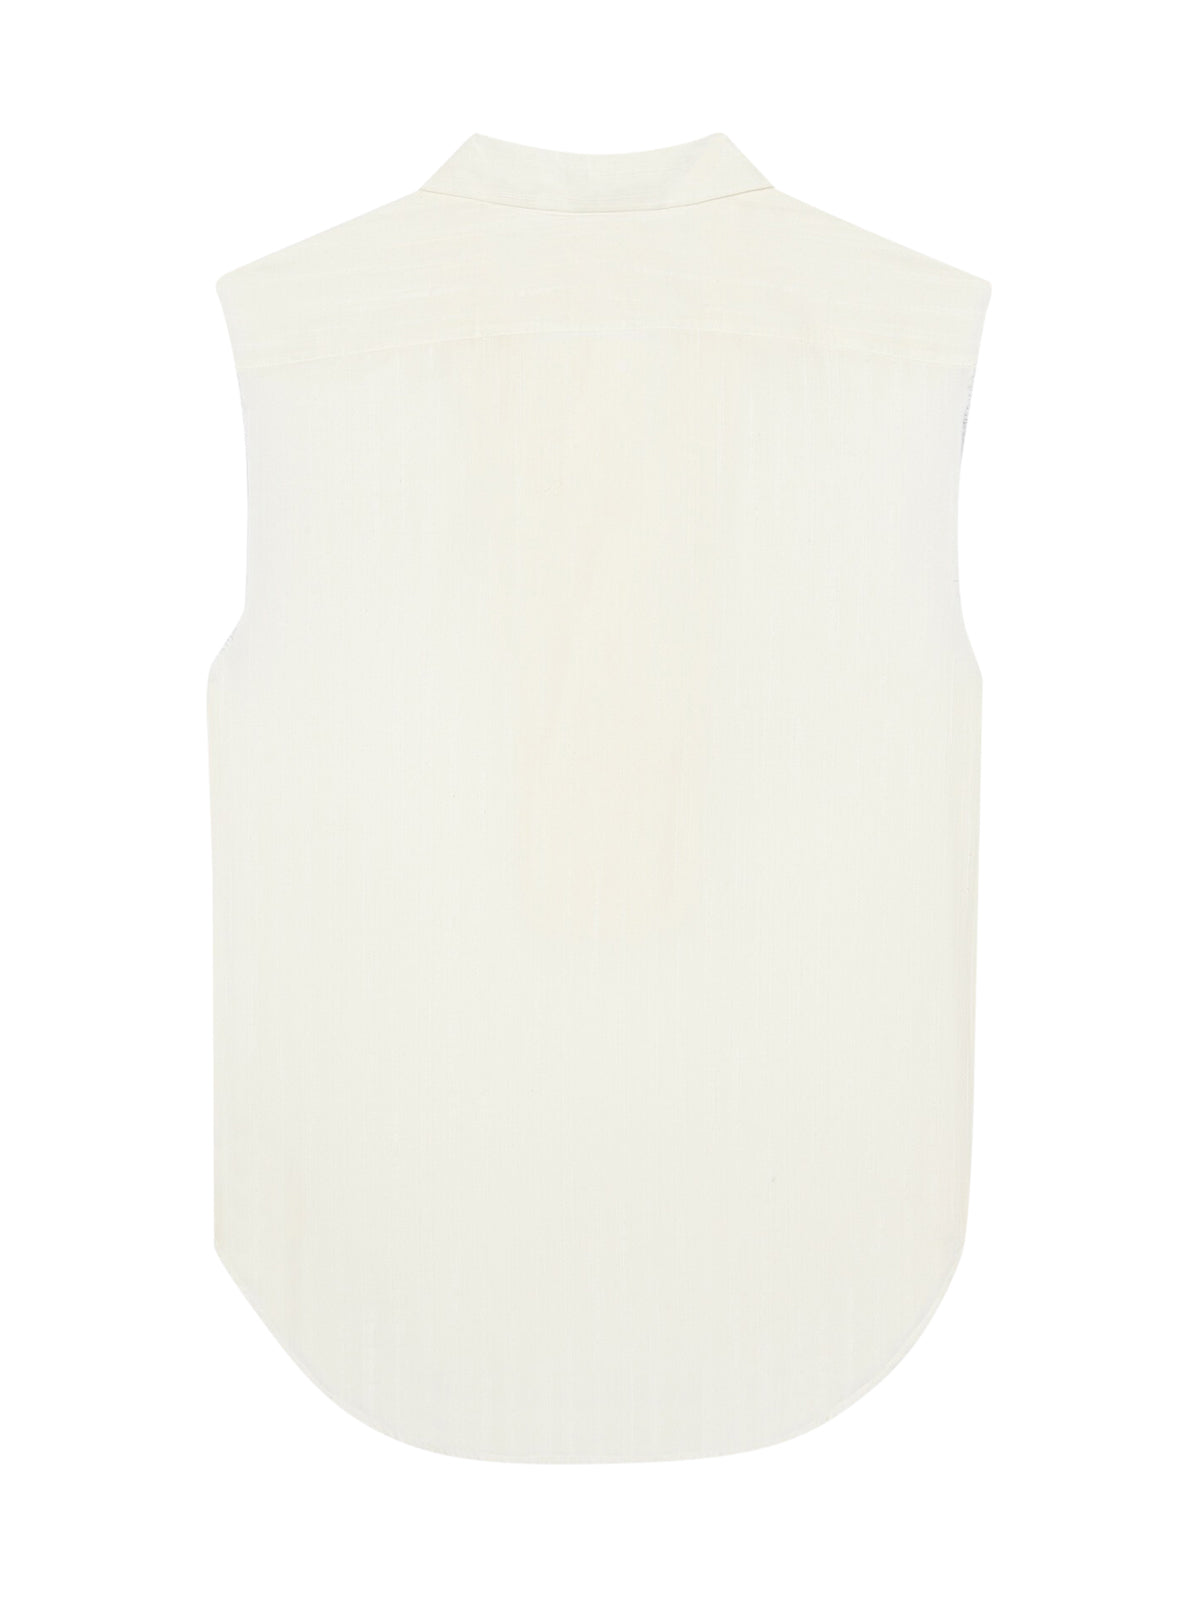 SLEEVELESS TUNIC IN EMBROIDERED STRIPE COTTON GAUZE